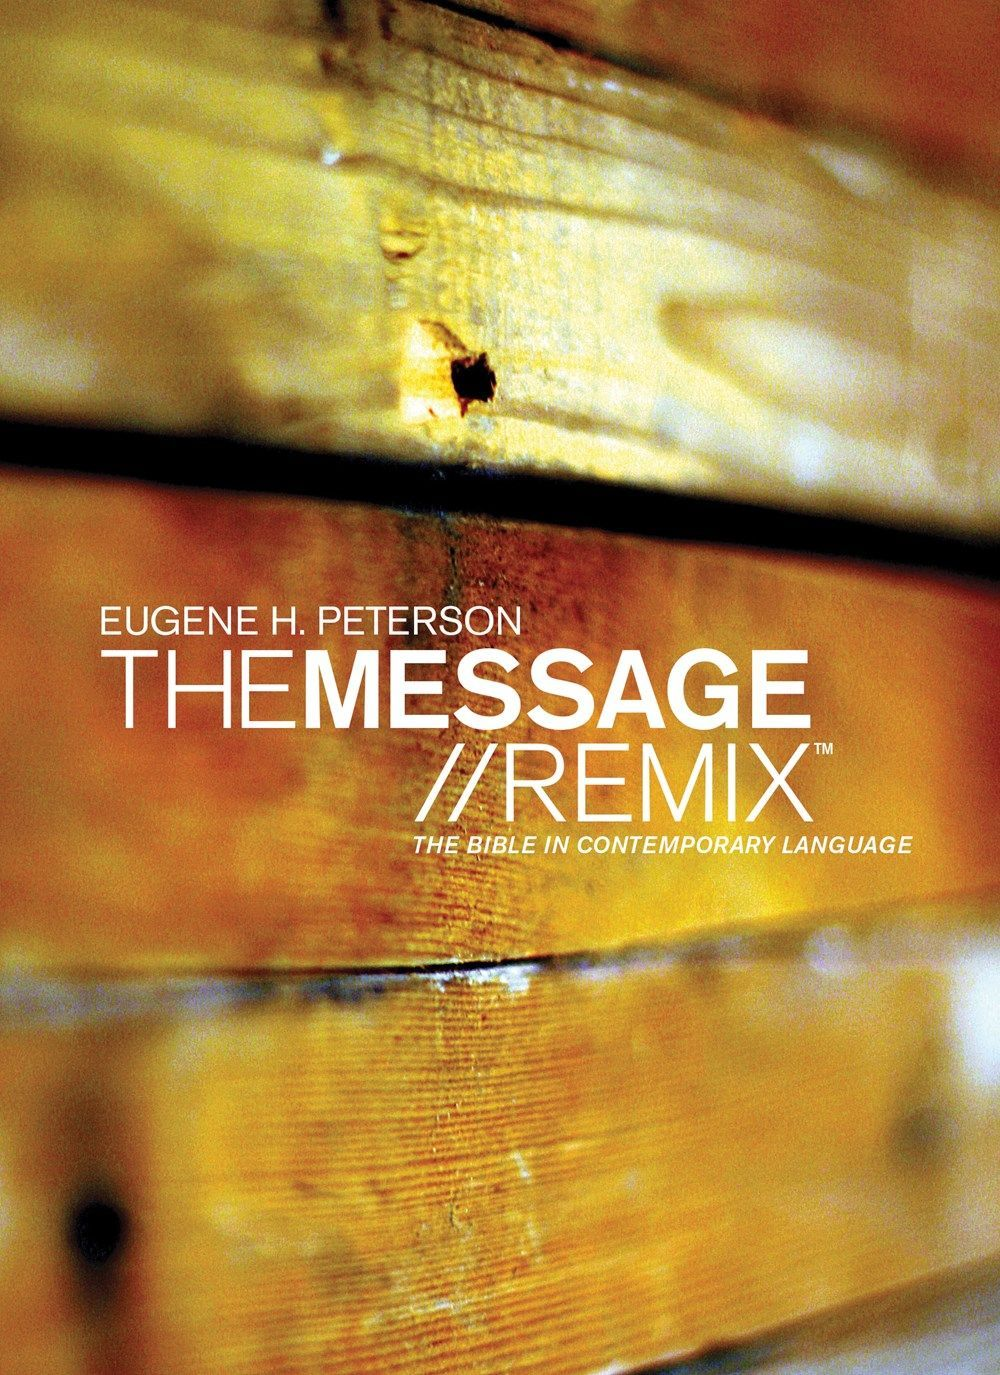 The Message Remix 2 0 Student Bible (Concrete Youth Hardcover - Case